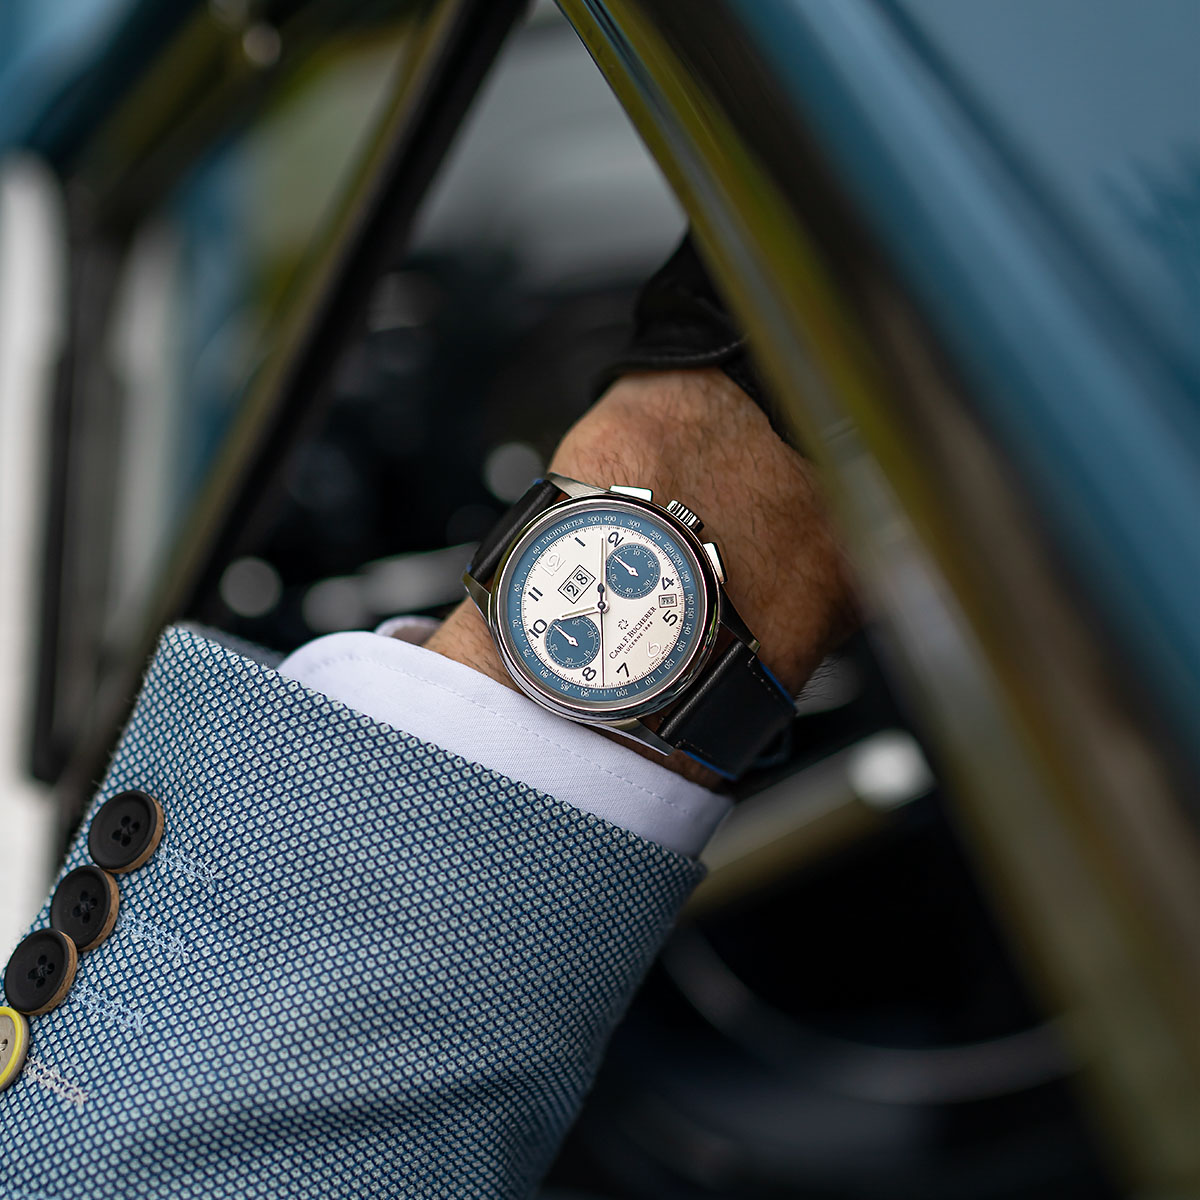 The Heritage BiCompax Annual Lucerne on the wrist